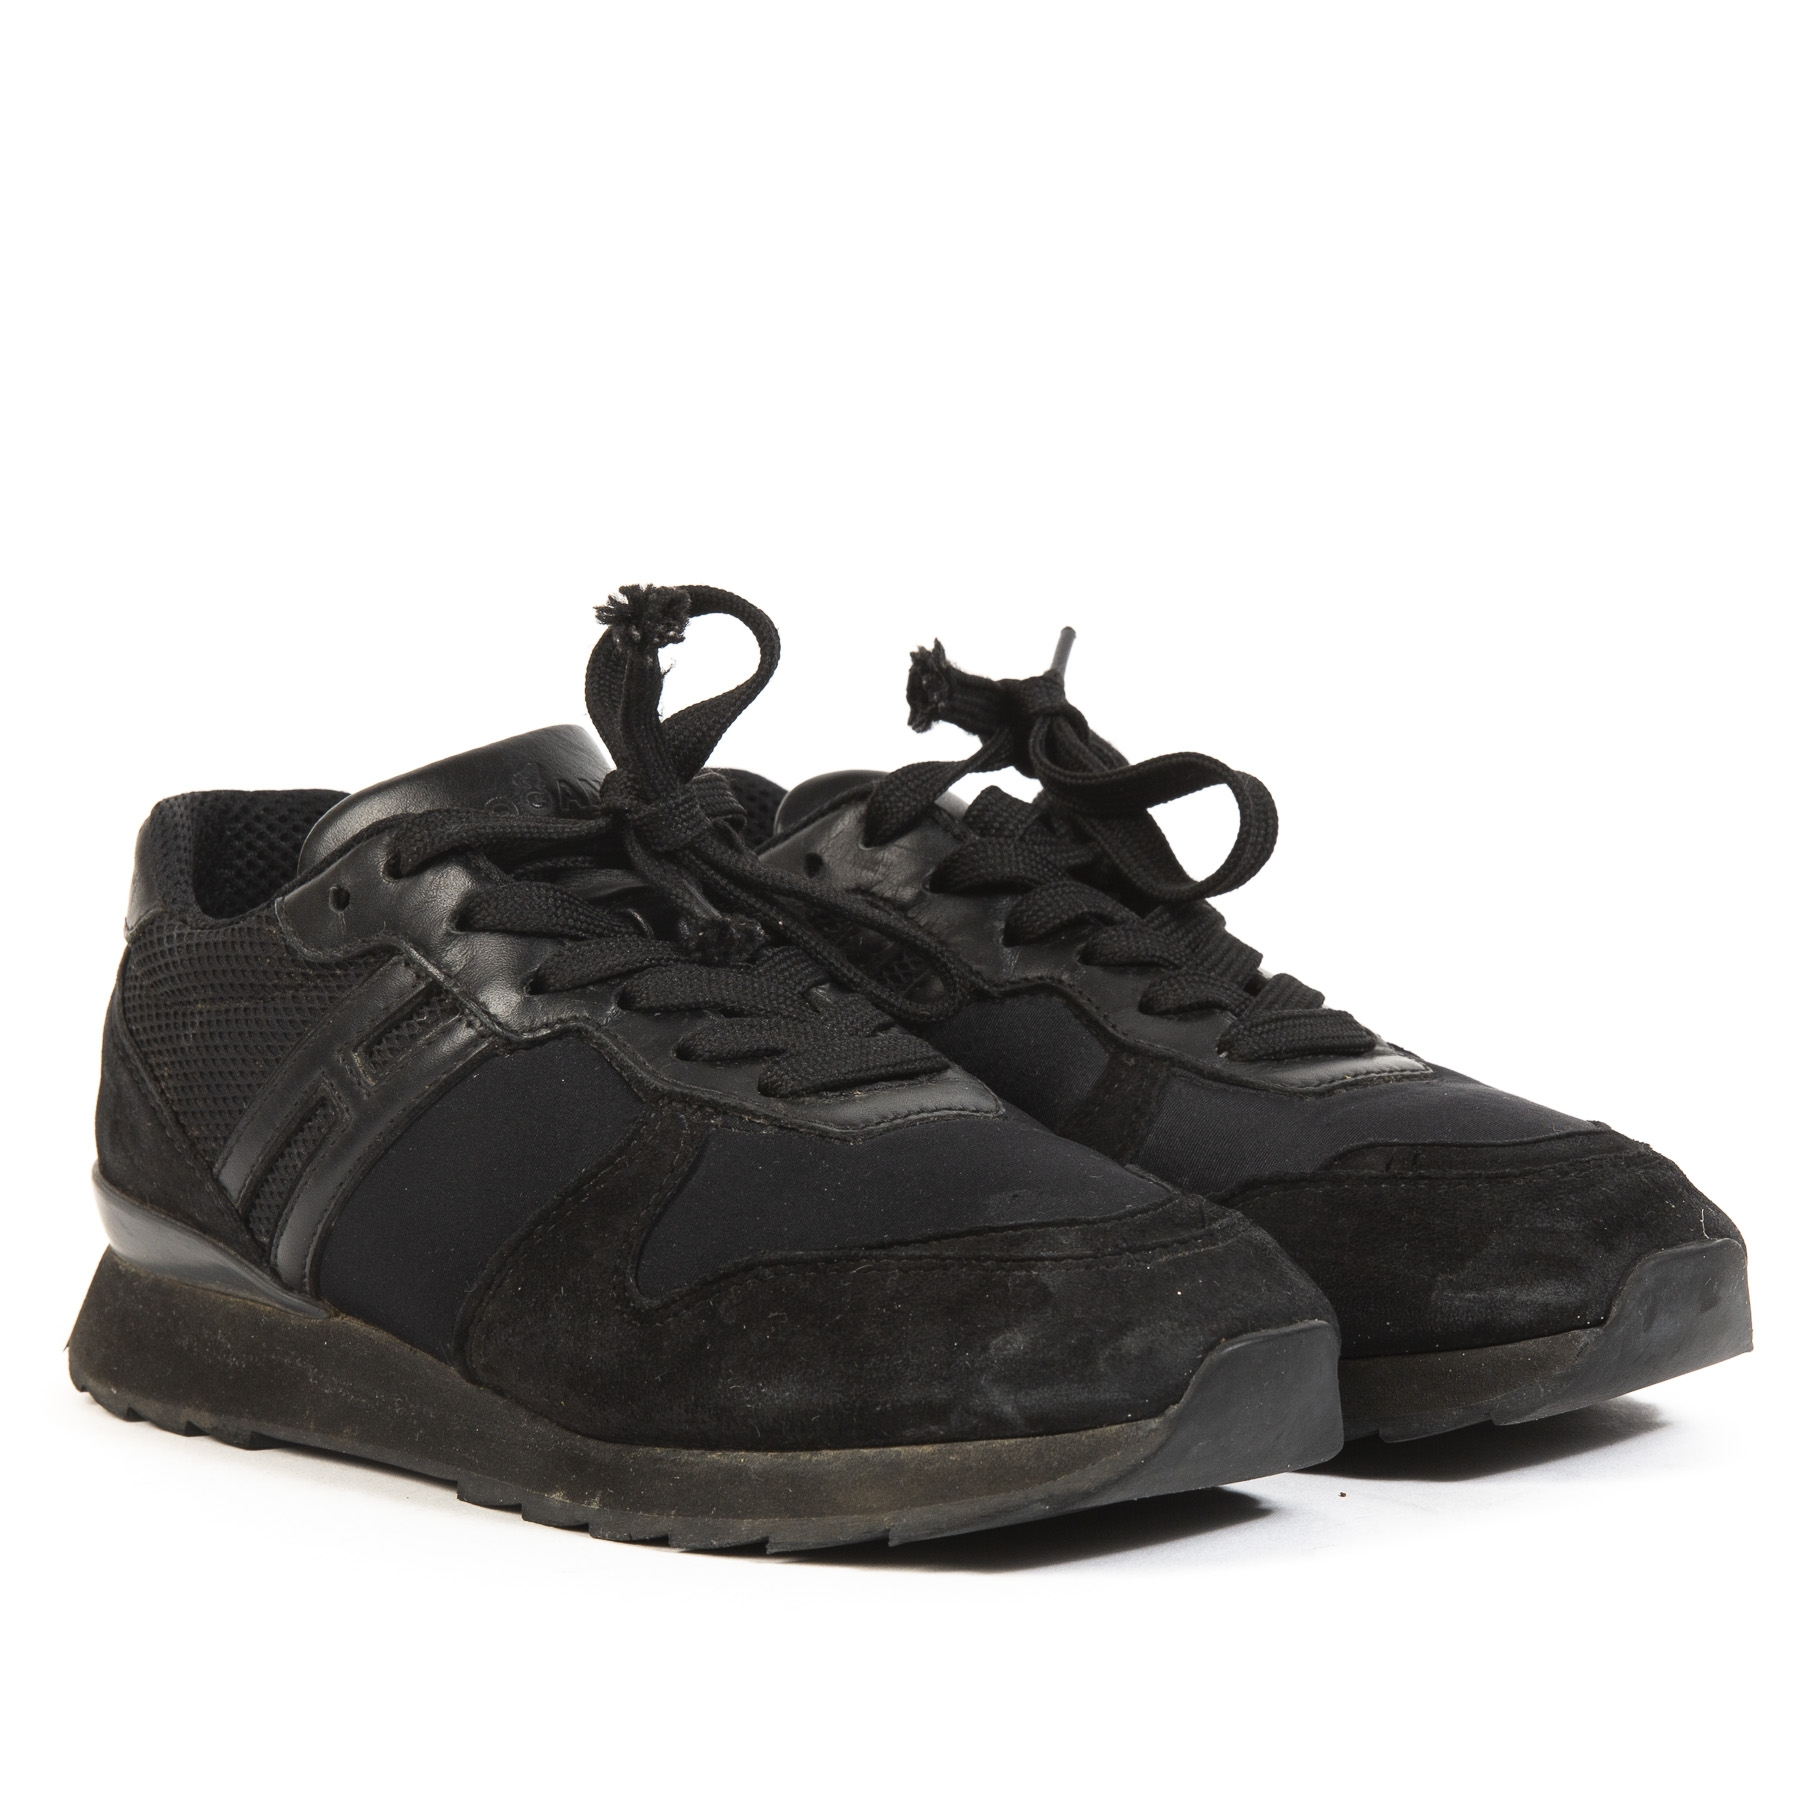 Buy authentic second hand Hogan Sneakers at online webshop LabelLOV.